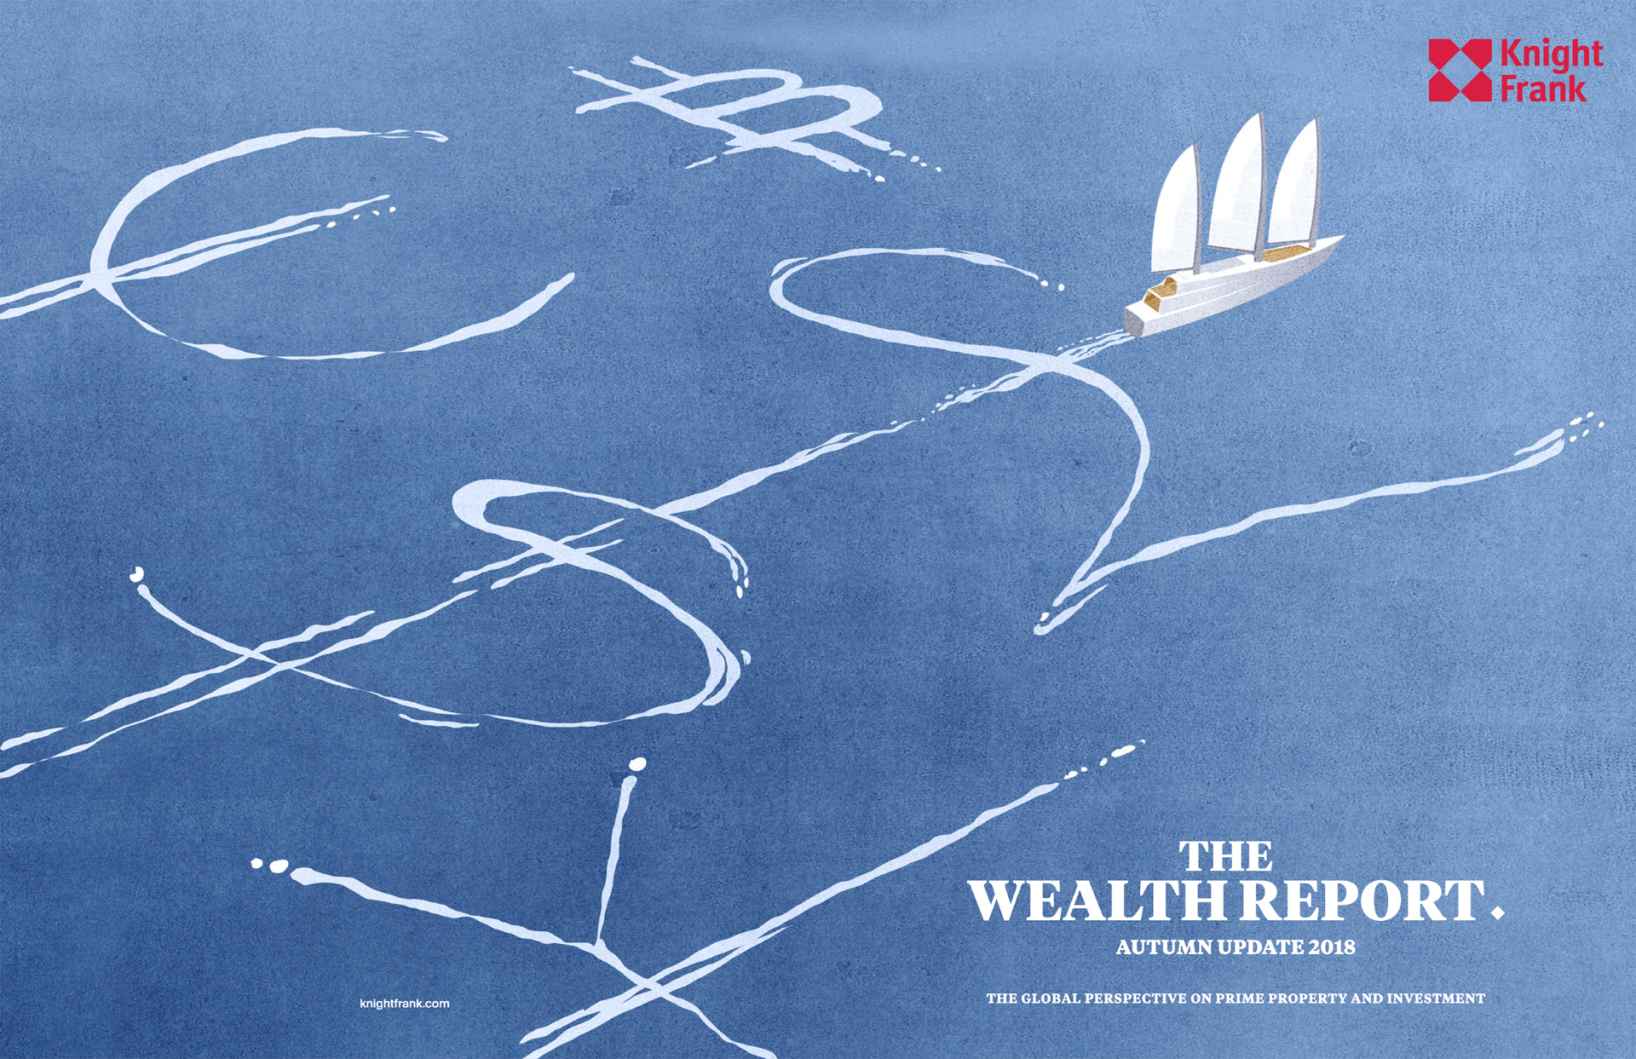 The Wealth Report 2018: Autumn update